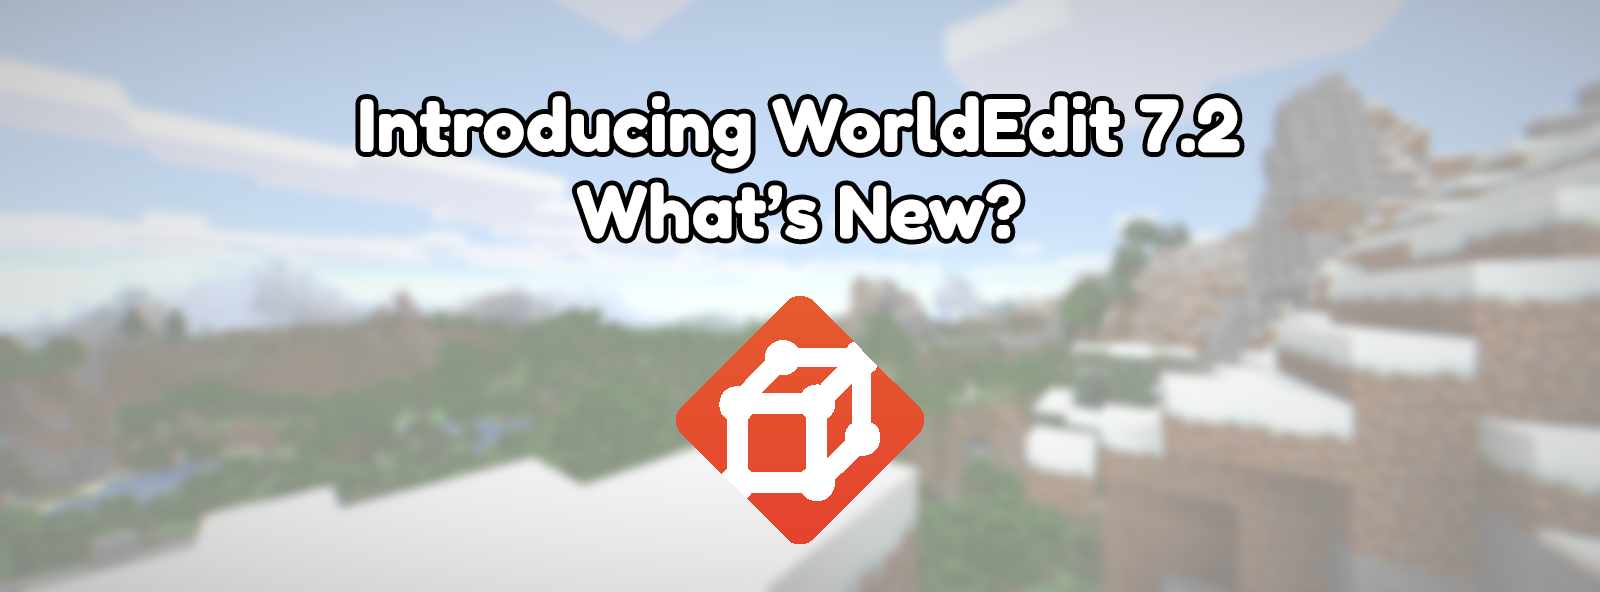 What's new in WorldEdit 7.2?